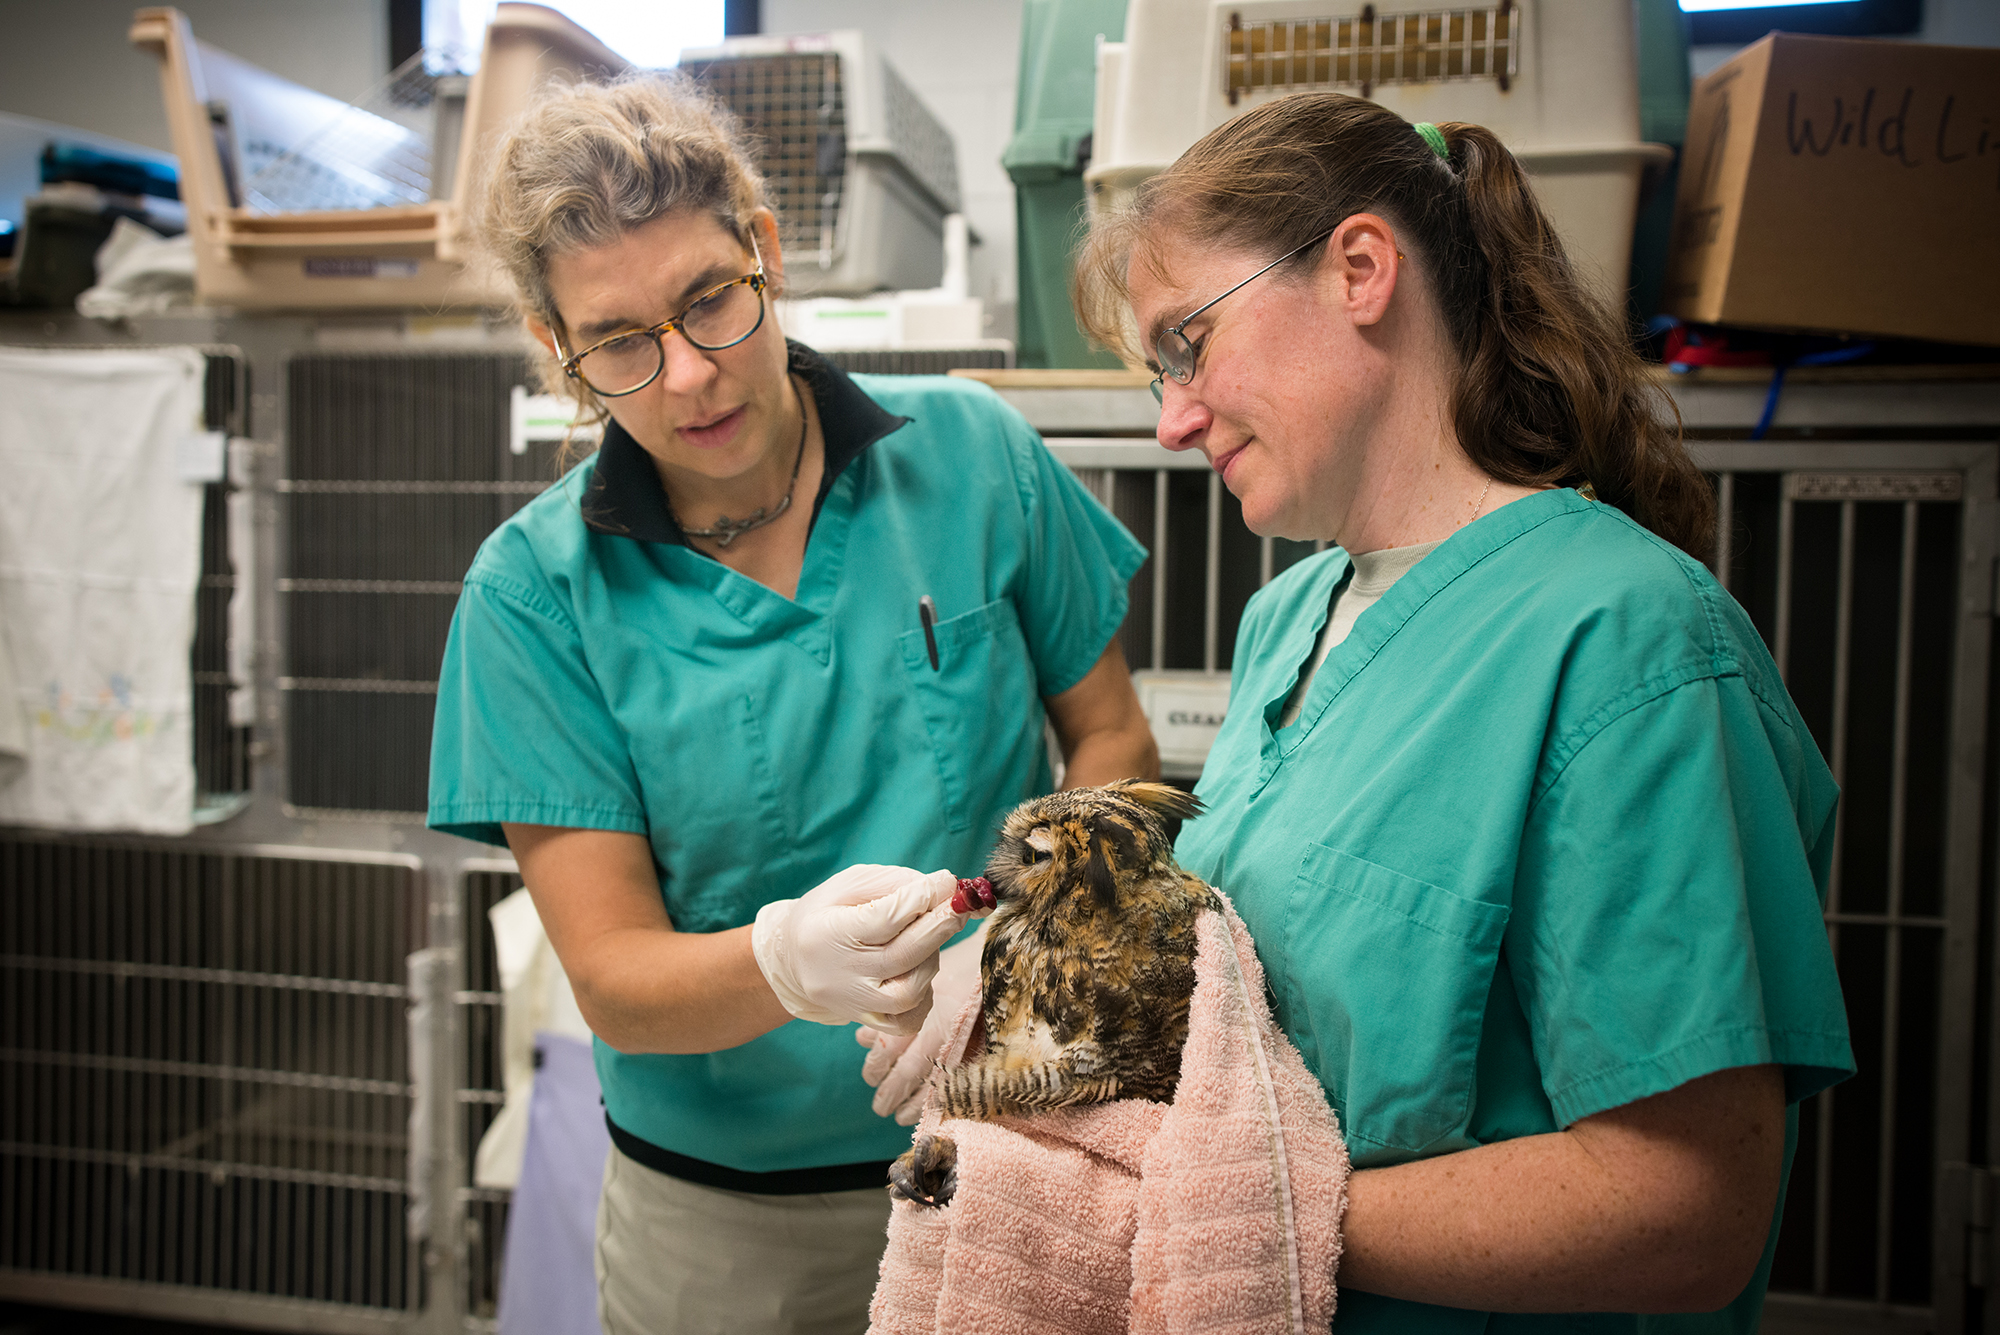 LVTs Alice VandeMark and Tina Hlywa feed a great horned owl at the Janet L. Swanson Wildlife Health Center.